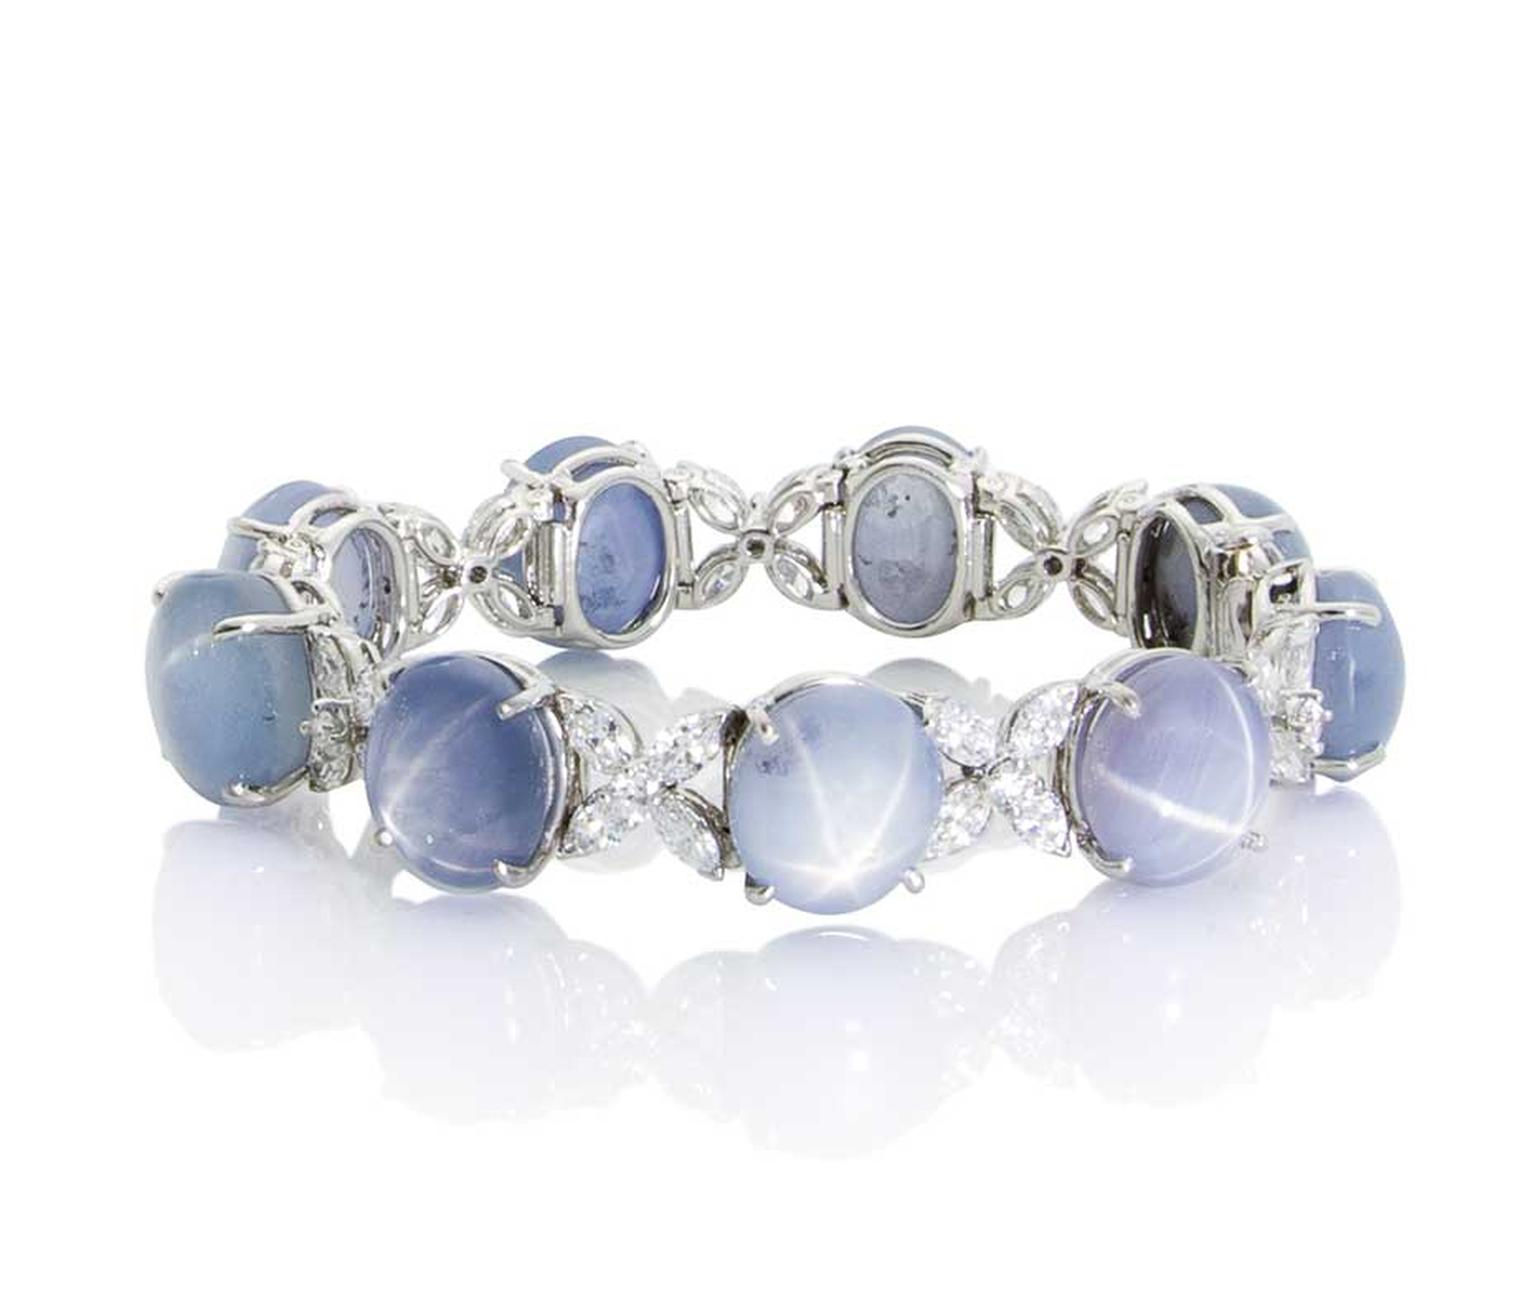 Oscar Heyman star sapphire bracelet in platinum with diamonds.